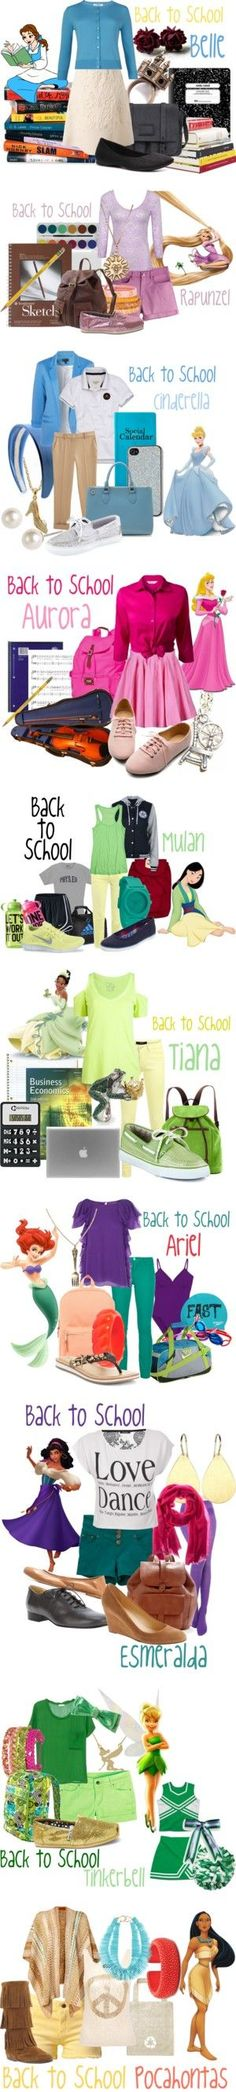 """""""Back to School Outfits"""" Disney Princess Style Pocahontas would be a linguist Disney Outfits, Disney Princess Outfits, Disney Dress Up, Outfits Niños, Themed Outfits, Disney Costumes, School Outfits, Movie Outfits, Disney Cosplay"""